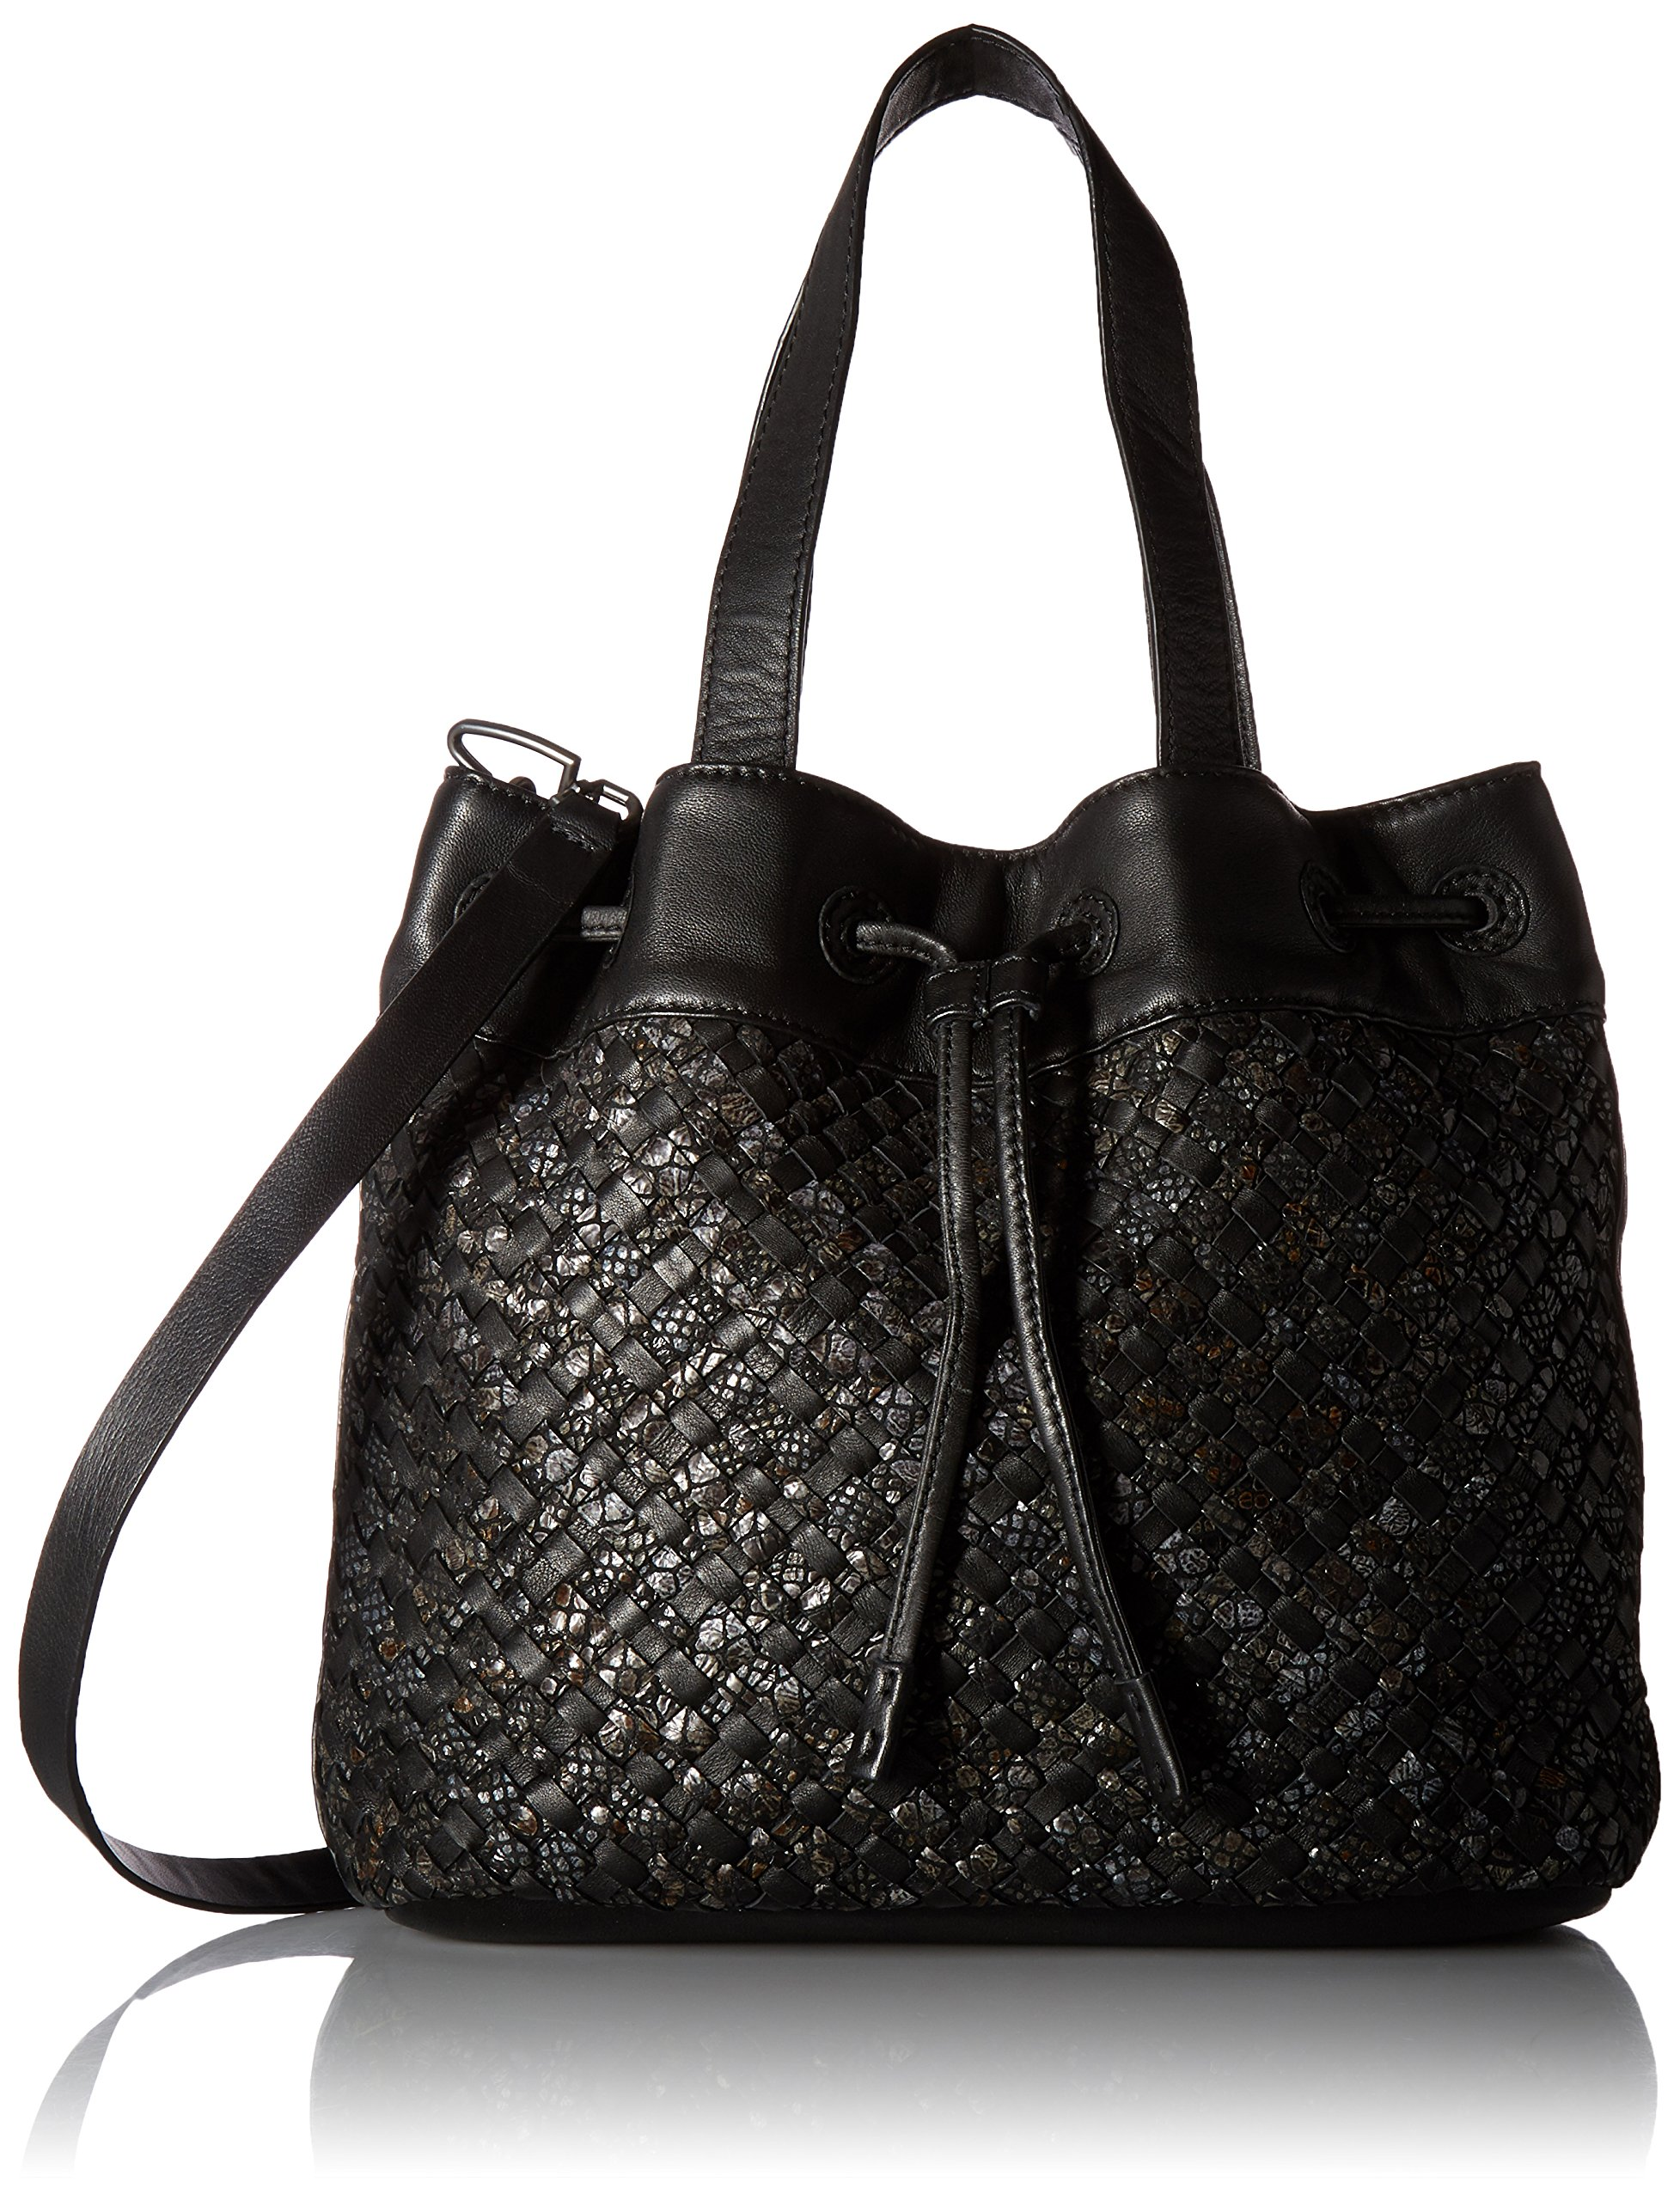 Liebeskind Berlin Women's Topeka Leather Snakeskin Handwoven Bucket Bag, Oil Black